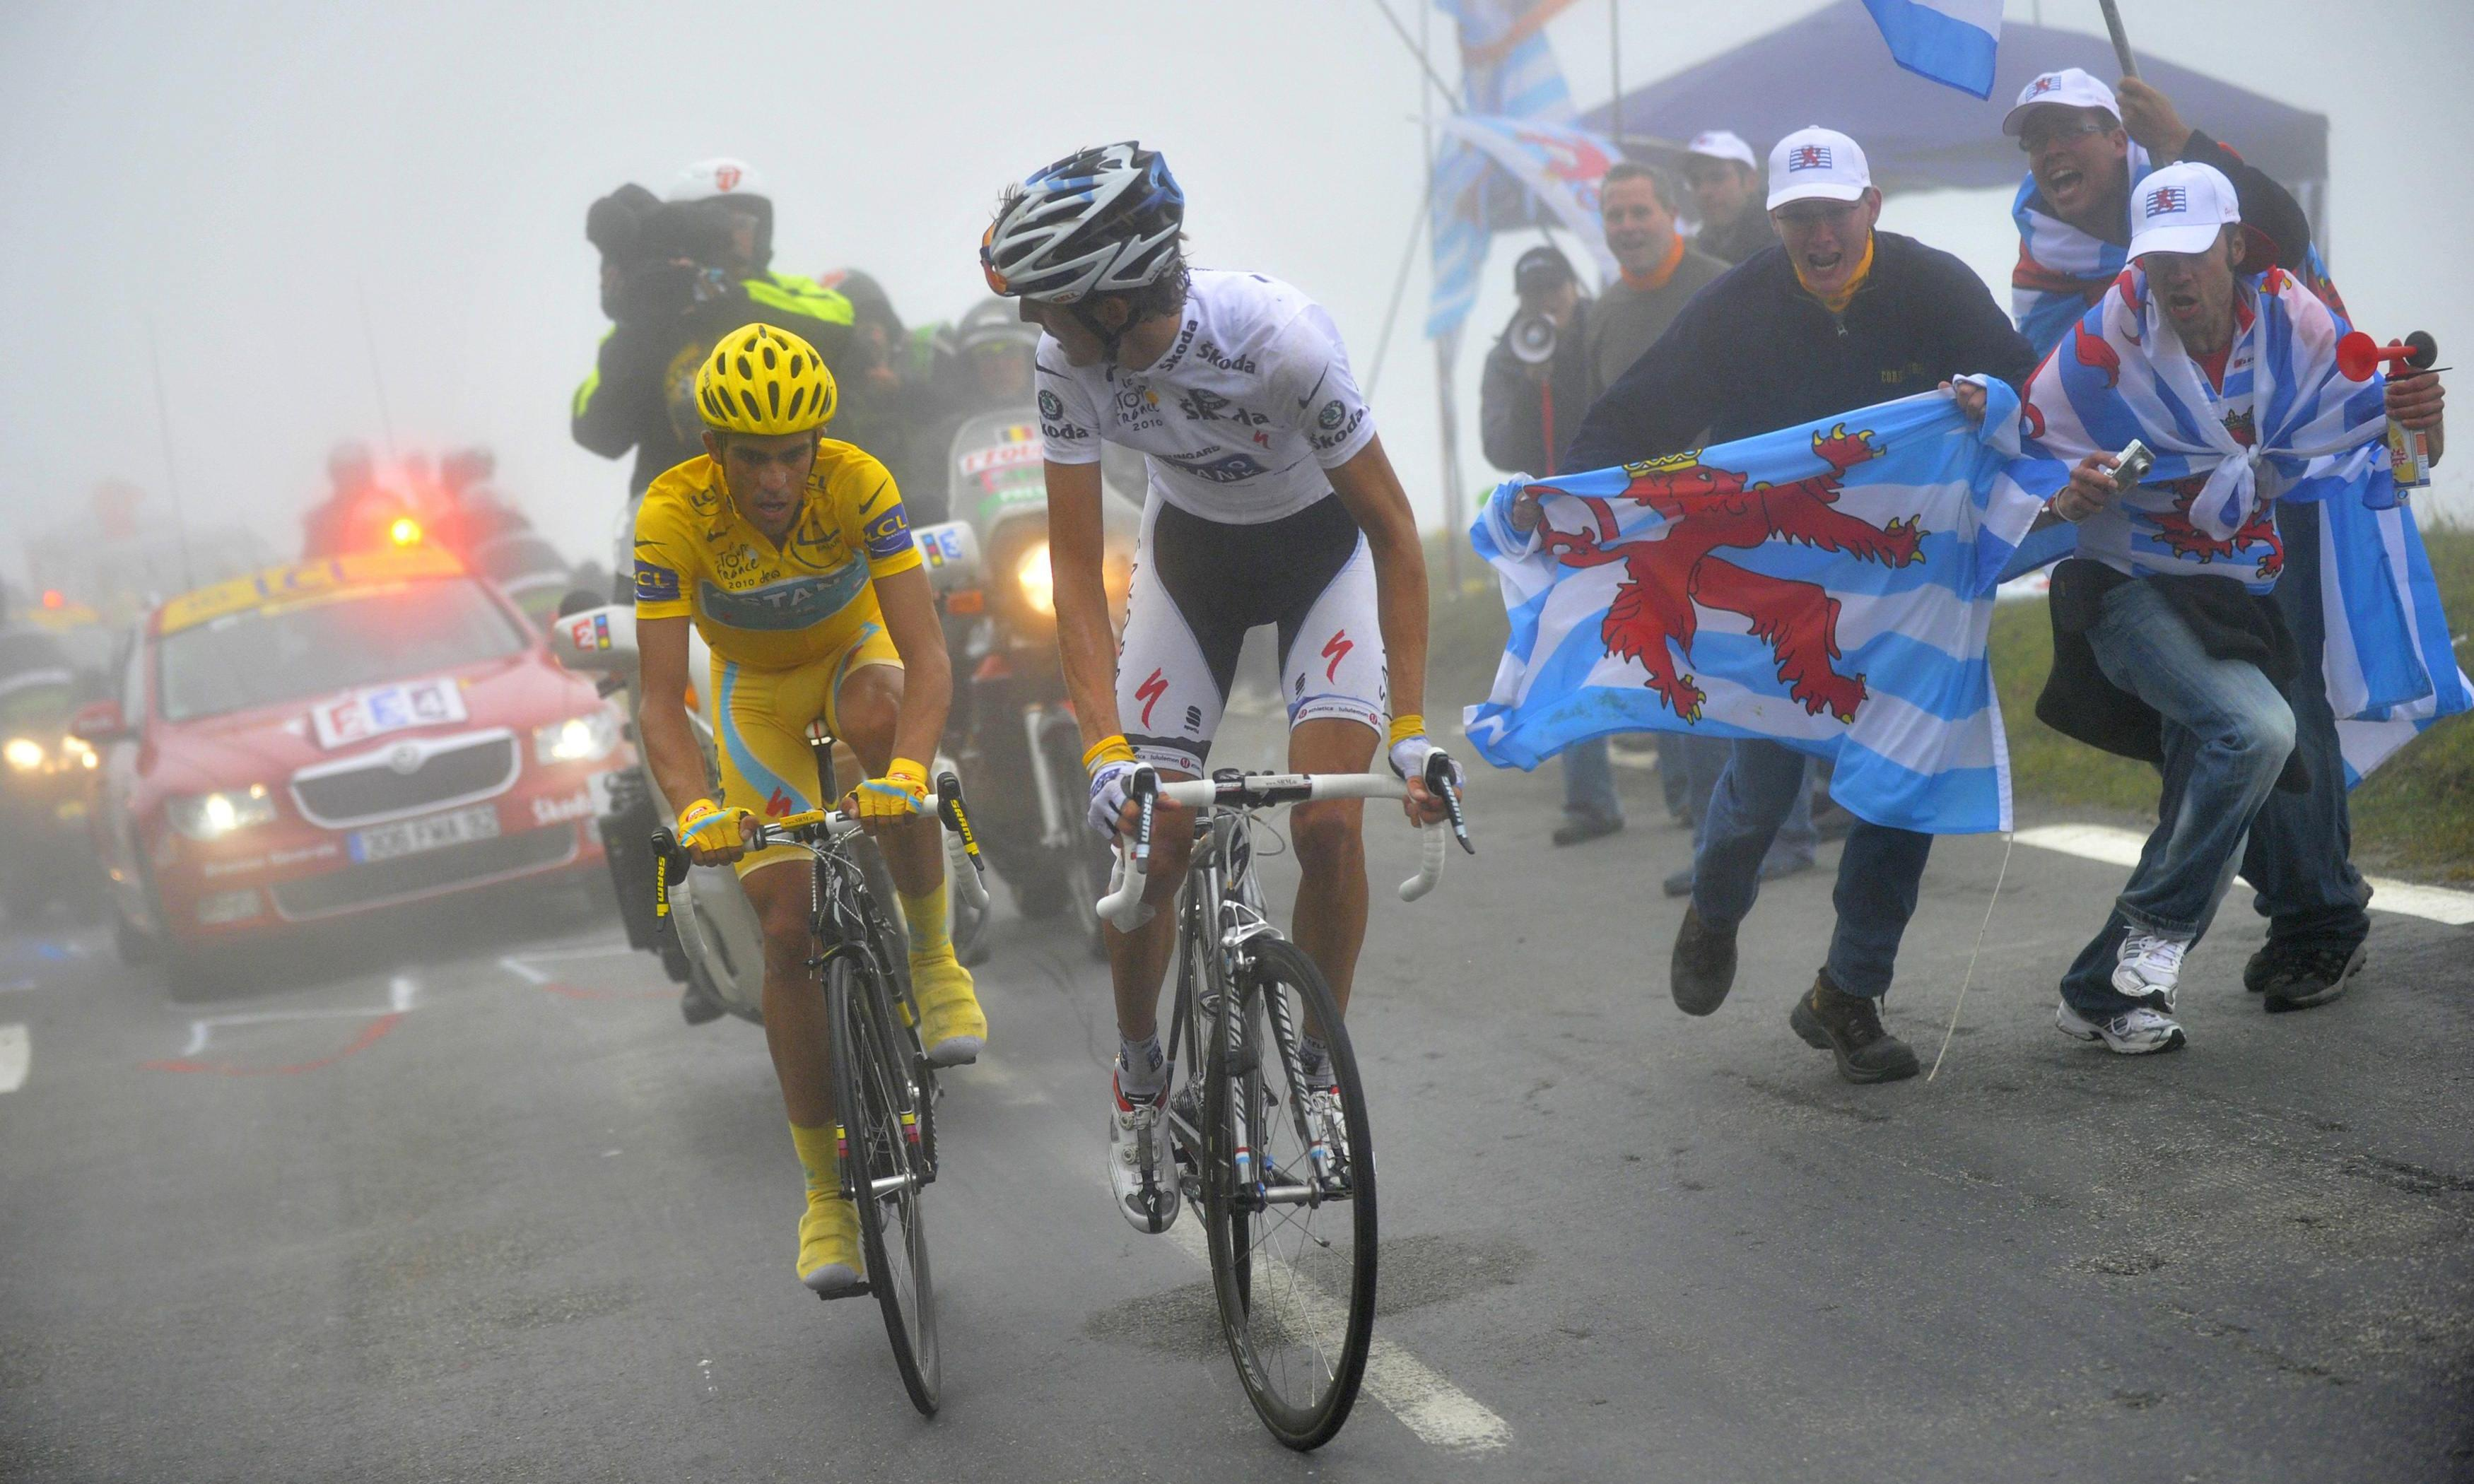 Tourmalet tussles, Women's World Cup finals and when bees attack